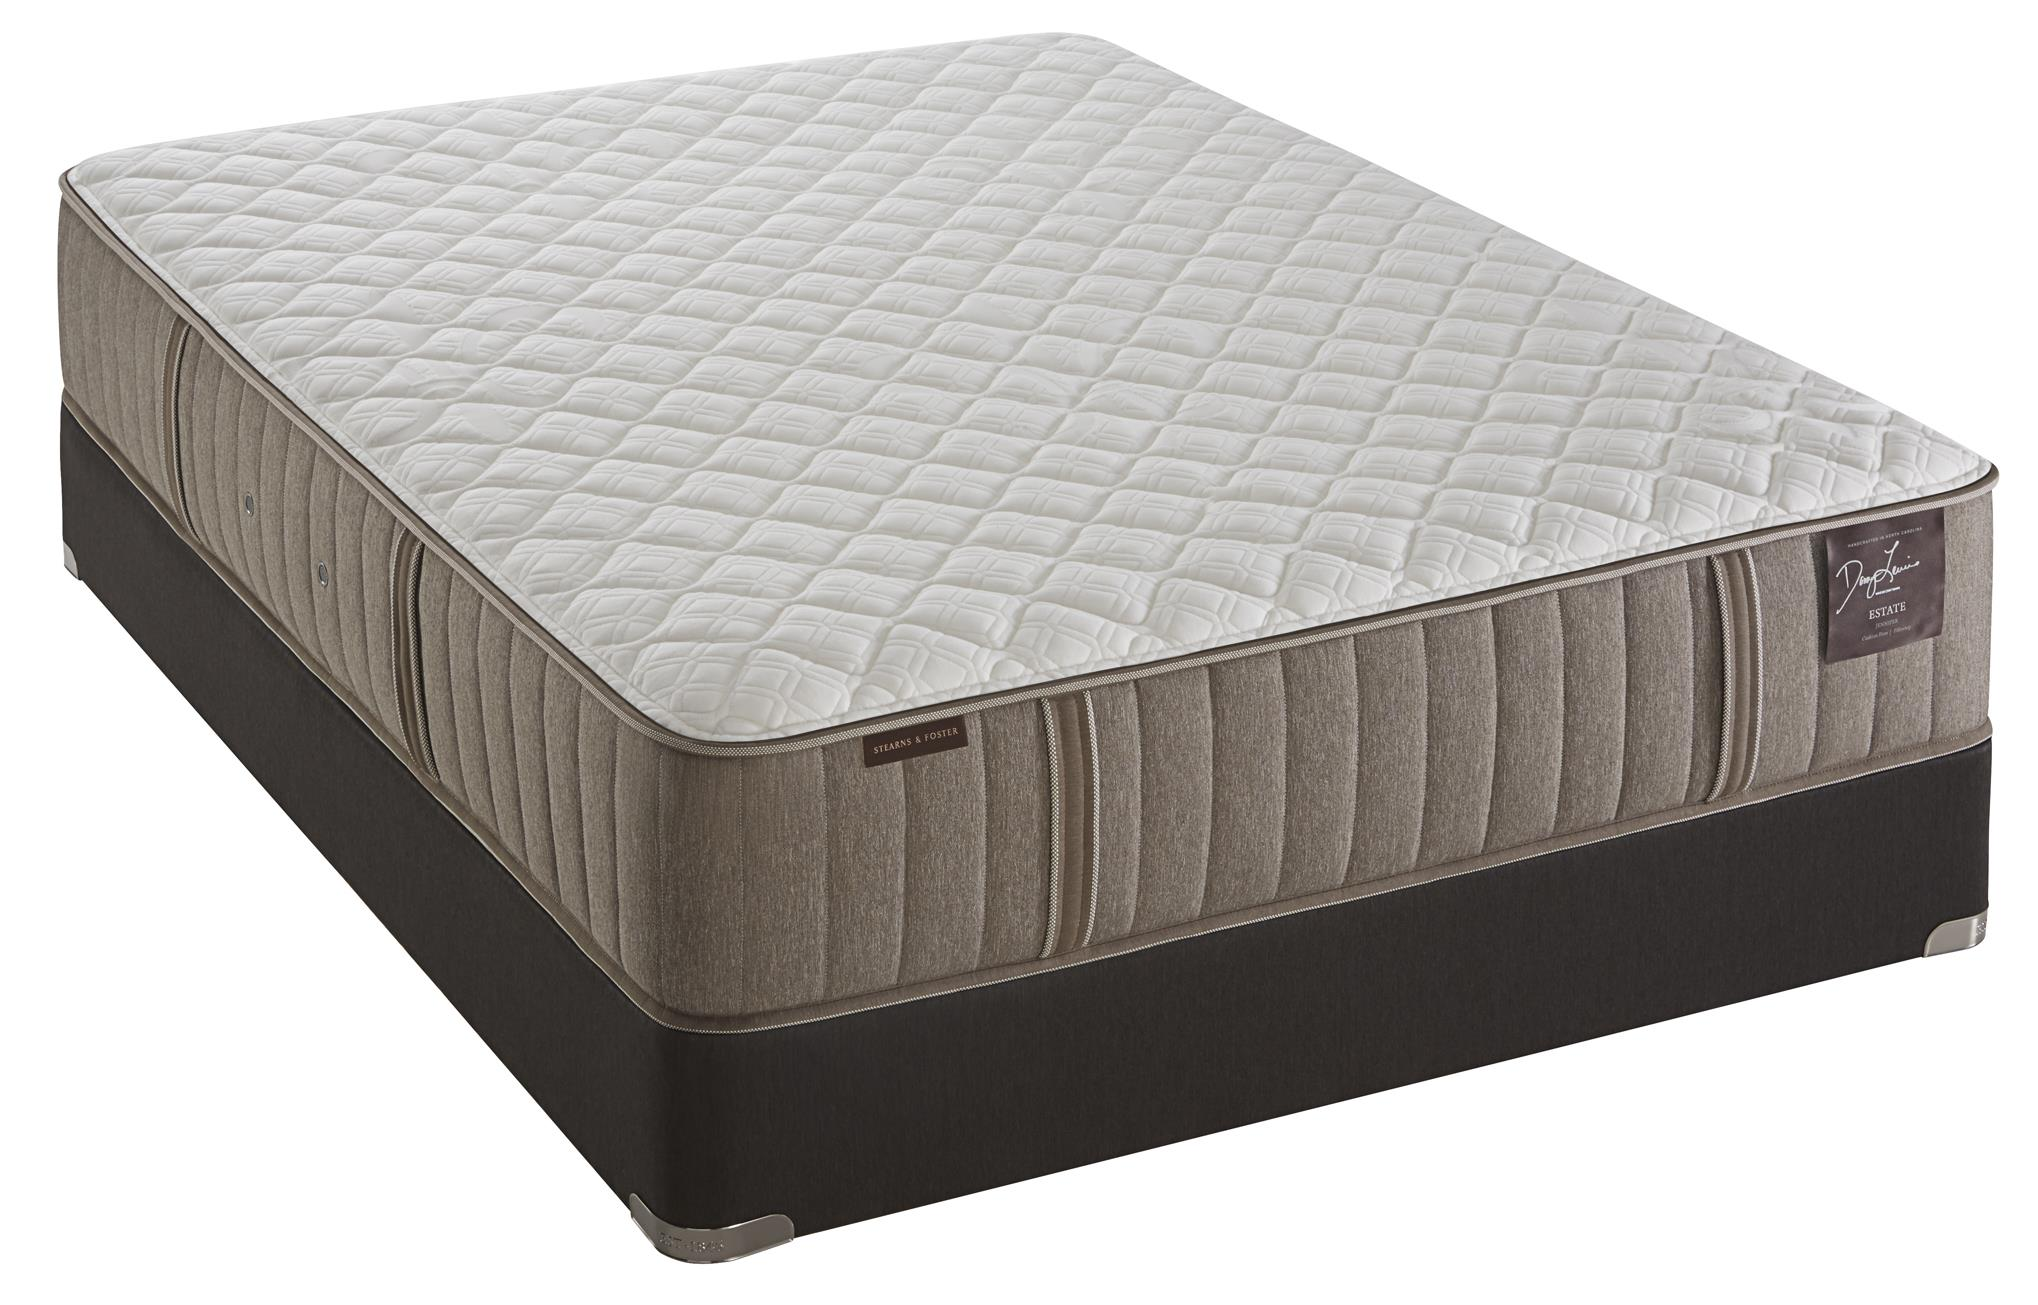 Stearns foster scarborough queen ultra firm mattress and for High mattress box spring